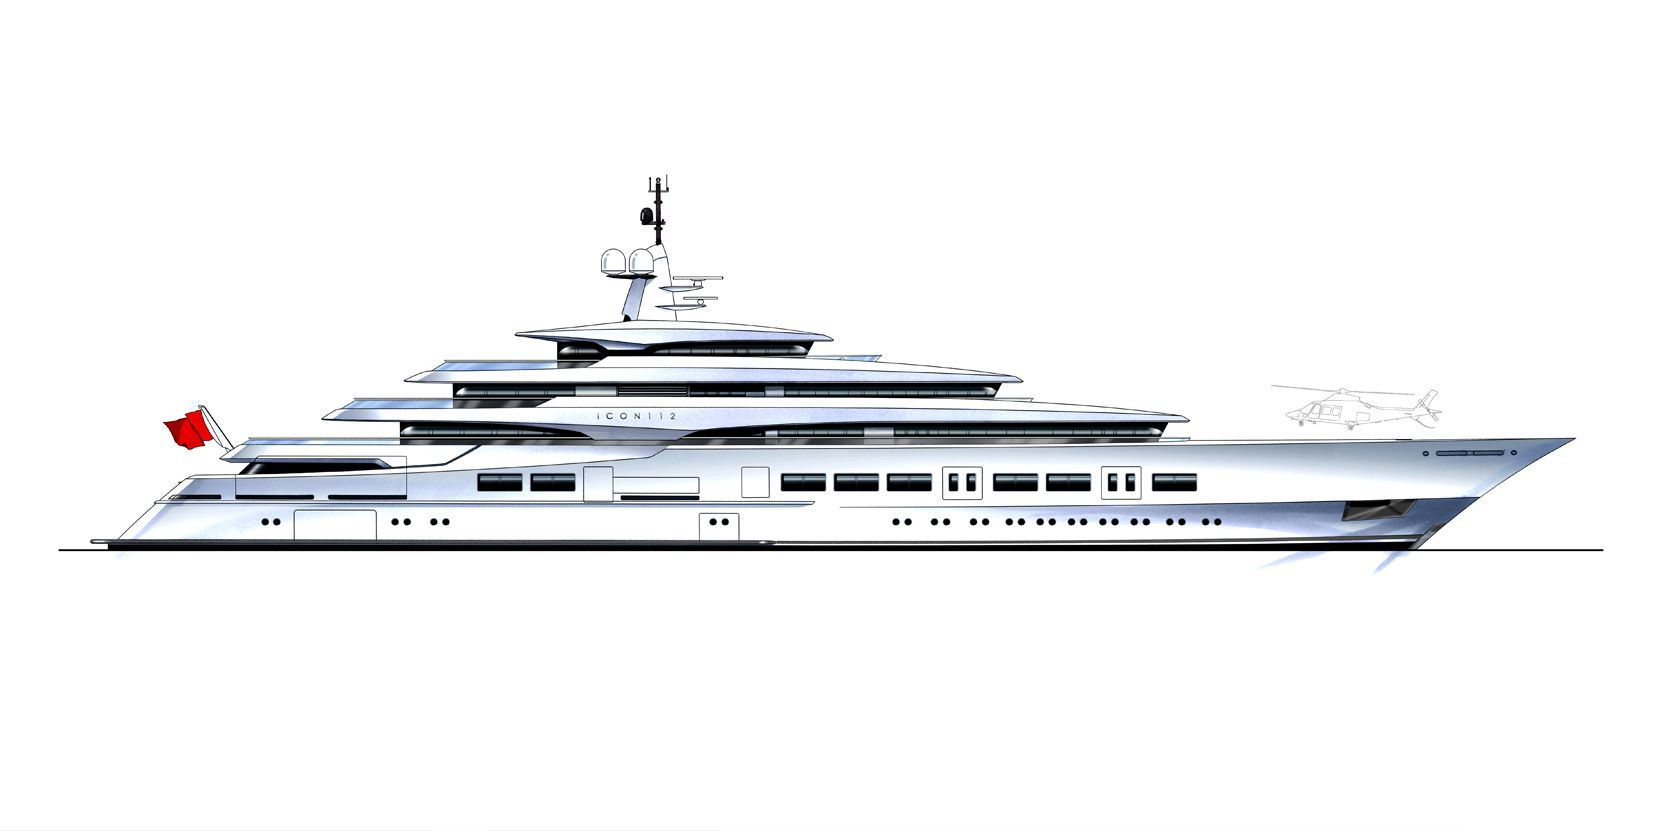 Lines Drawing Naval Architecture : Naval architect drawing of a superyacht watercraft